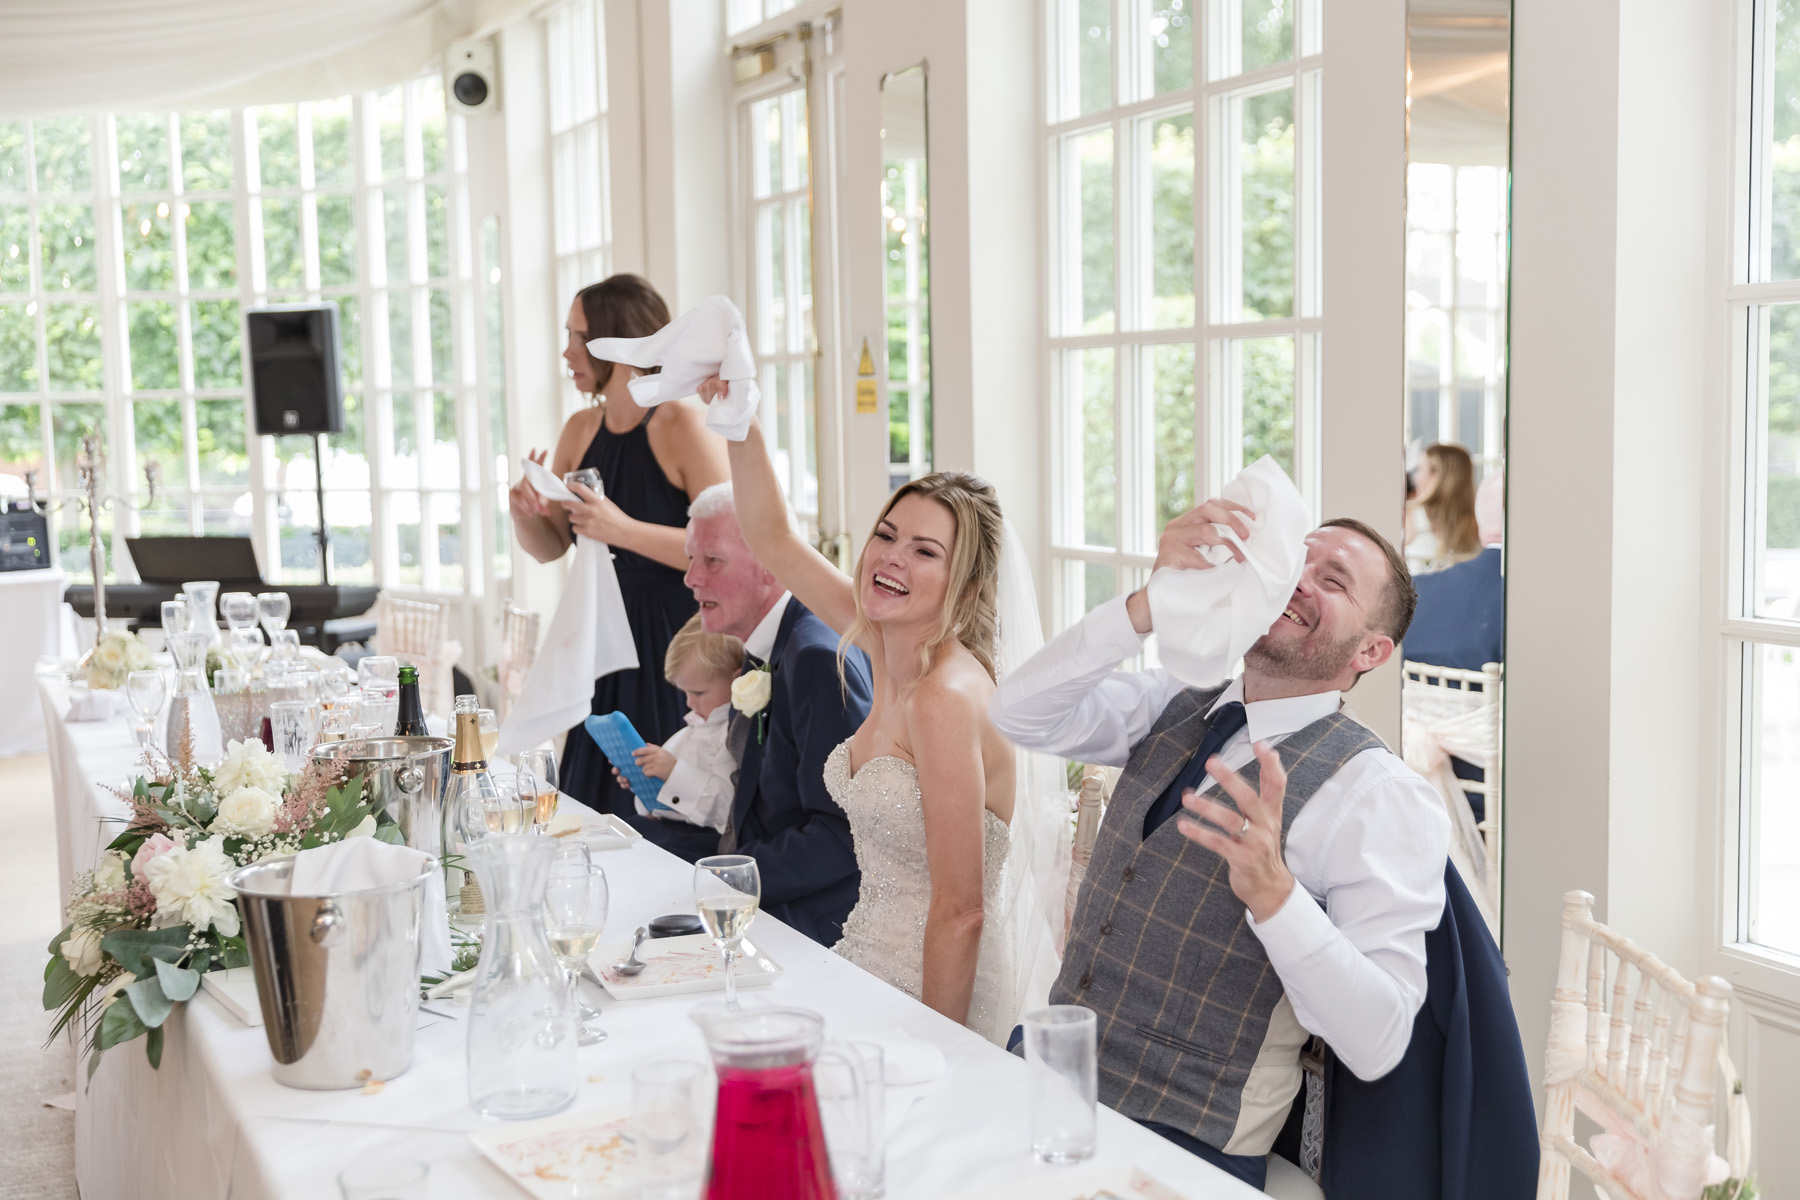 Bride & groom laughing during fun entertainment during meal at Warwick house